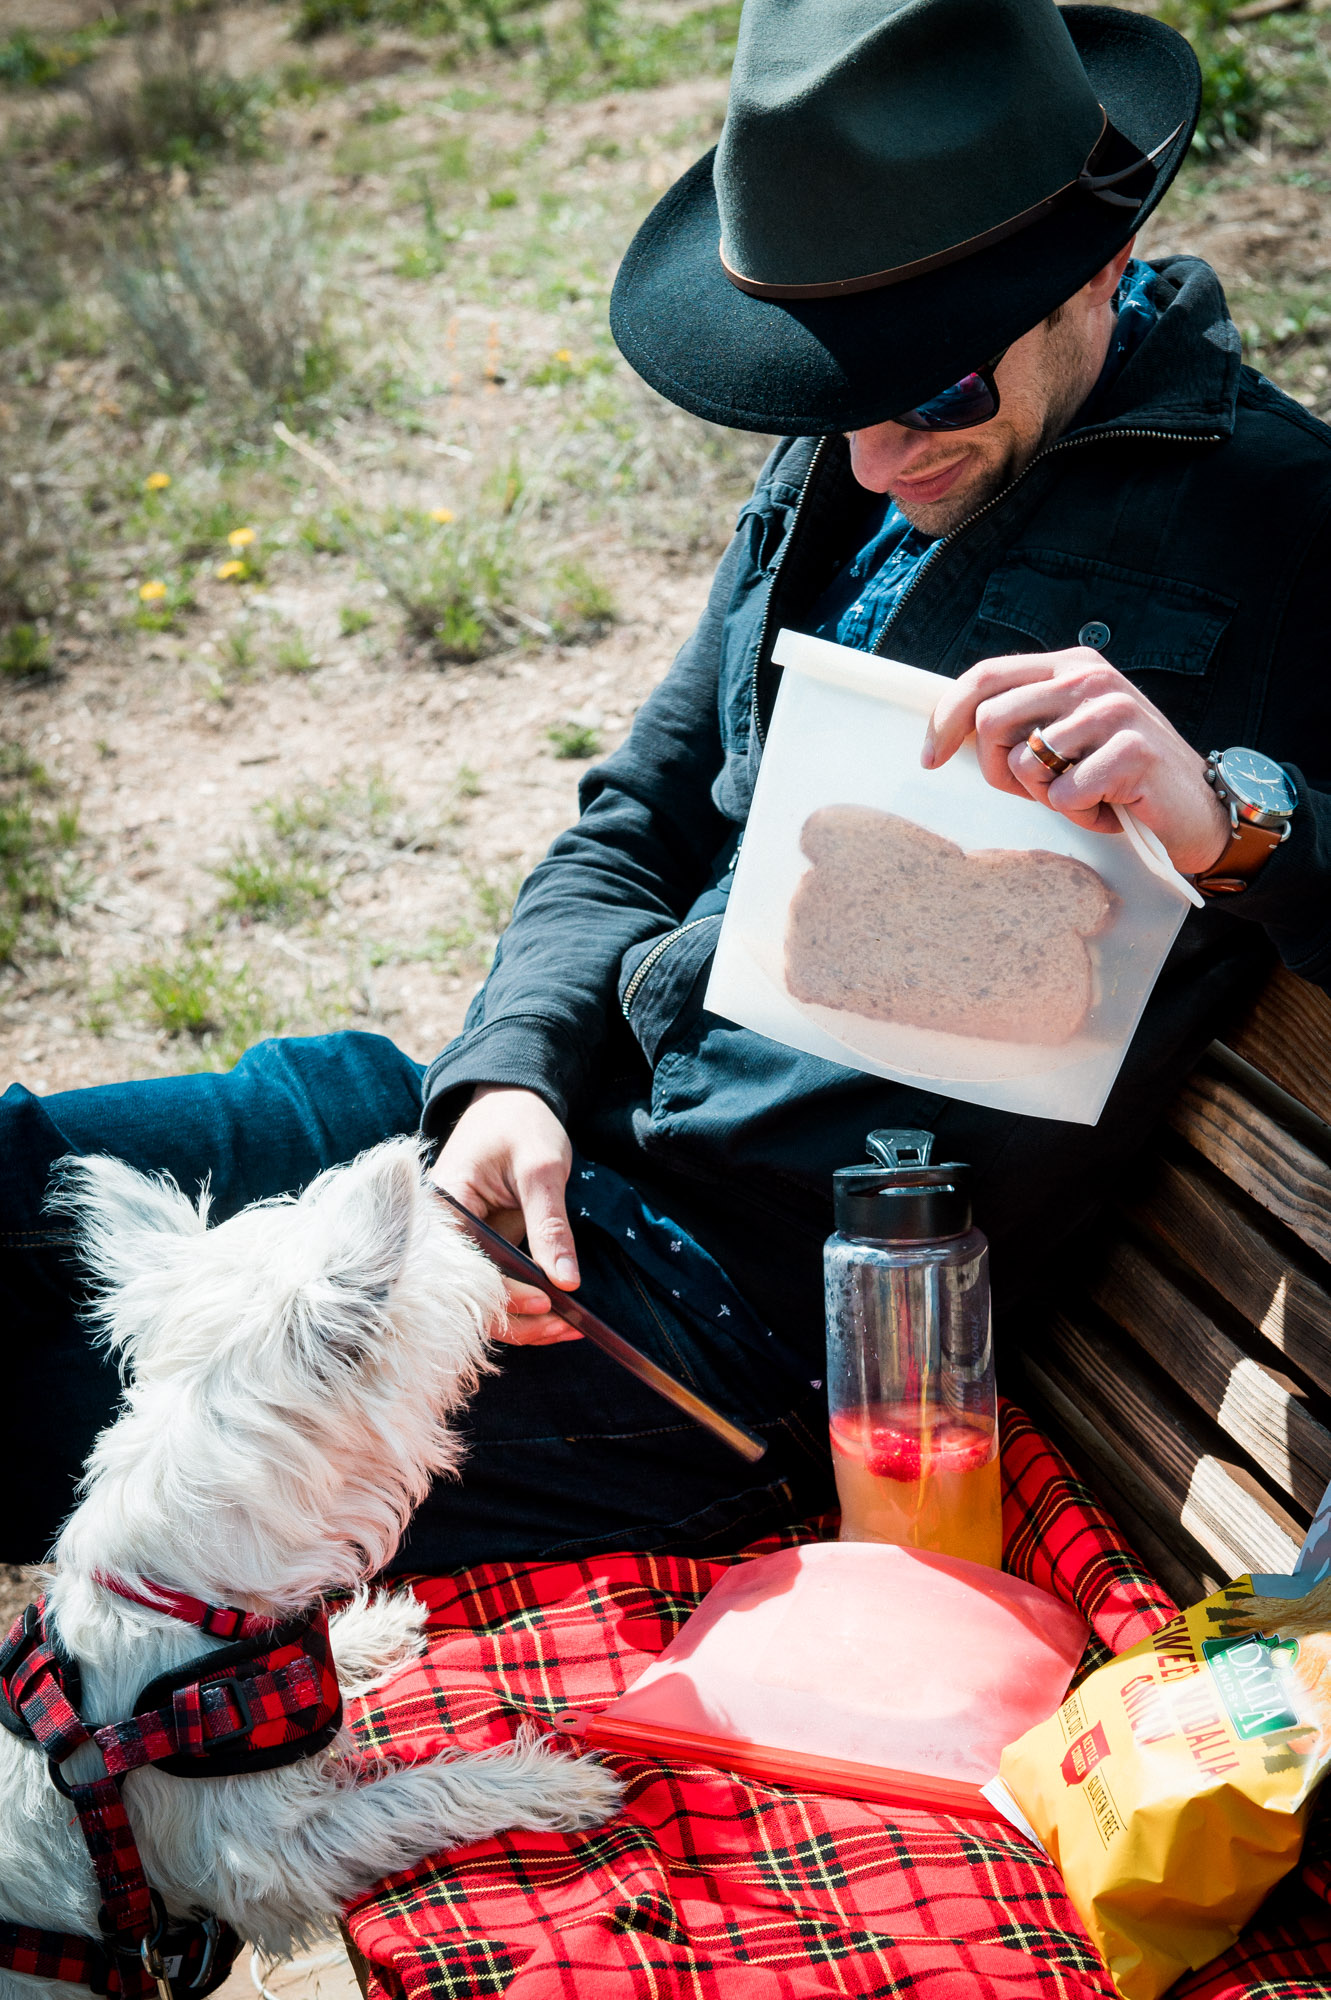 Husband, pup and a basic picnic on a bench.